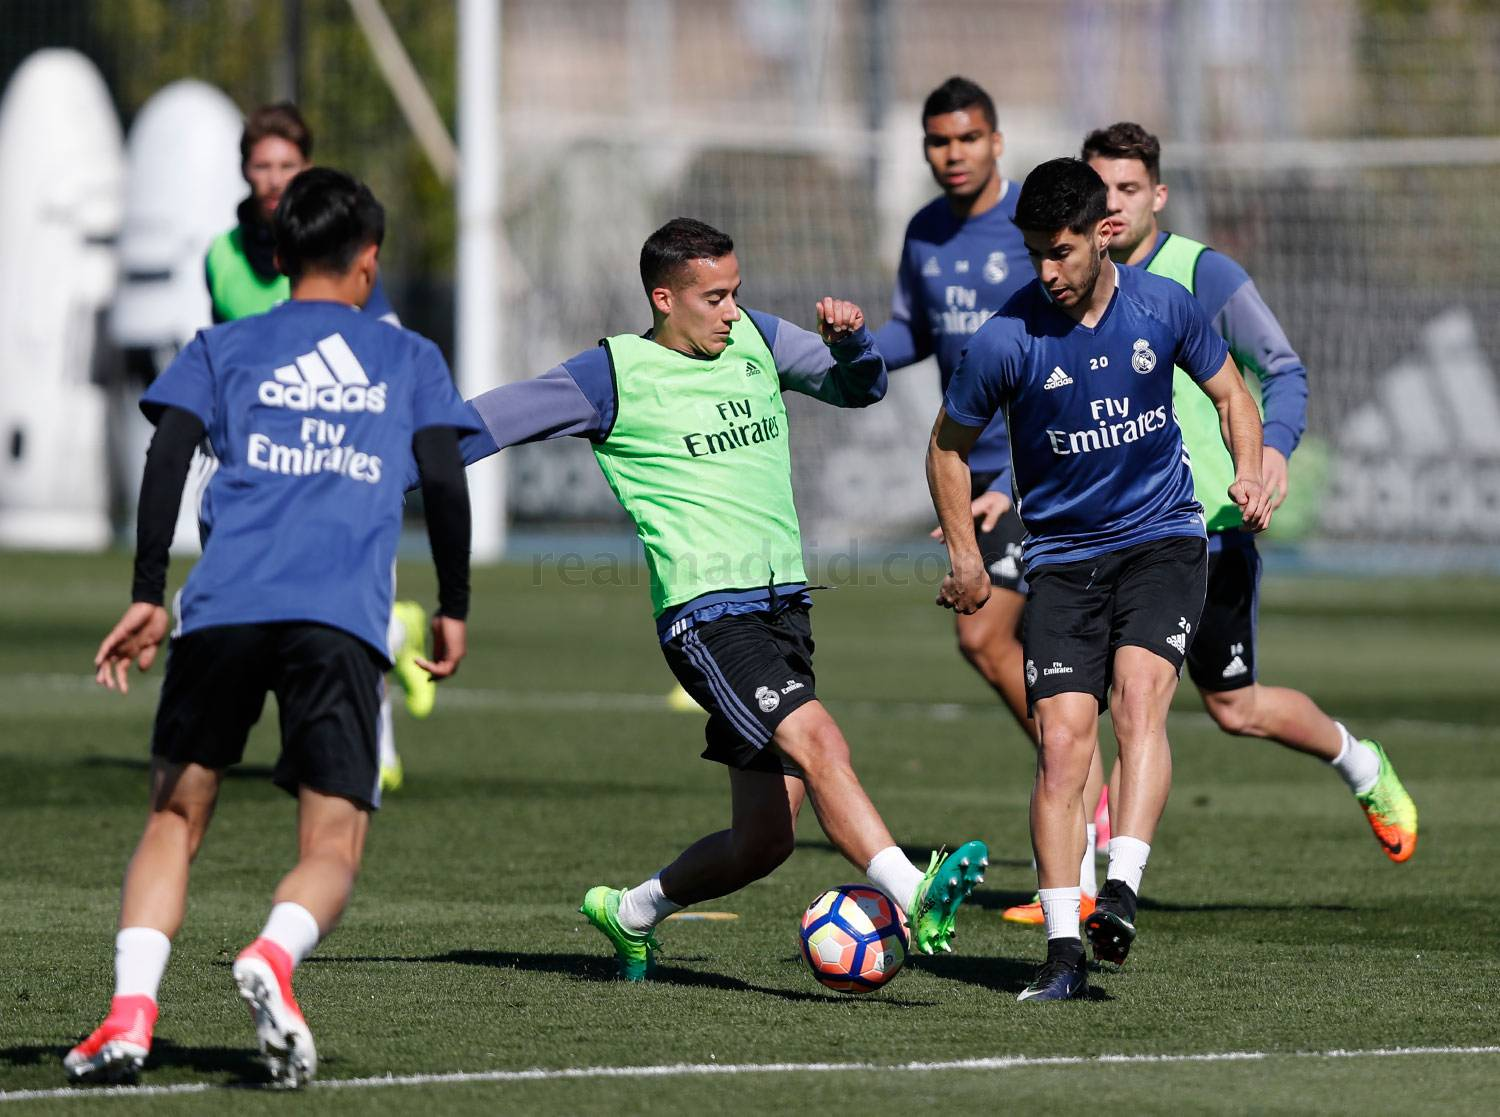 Real Madrid - Entrenamiento del Real Madrid - 03-04-2017